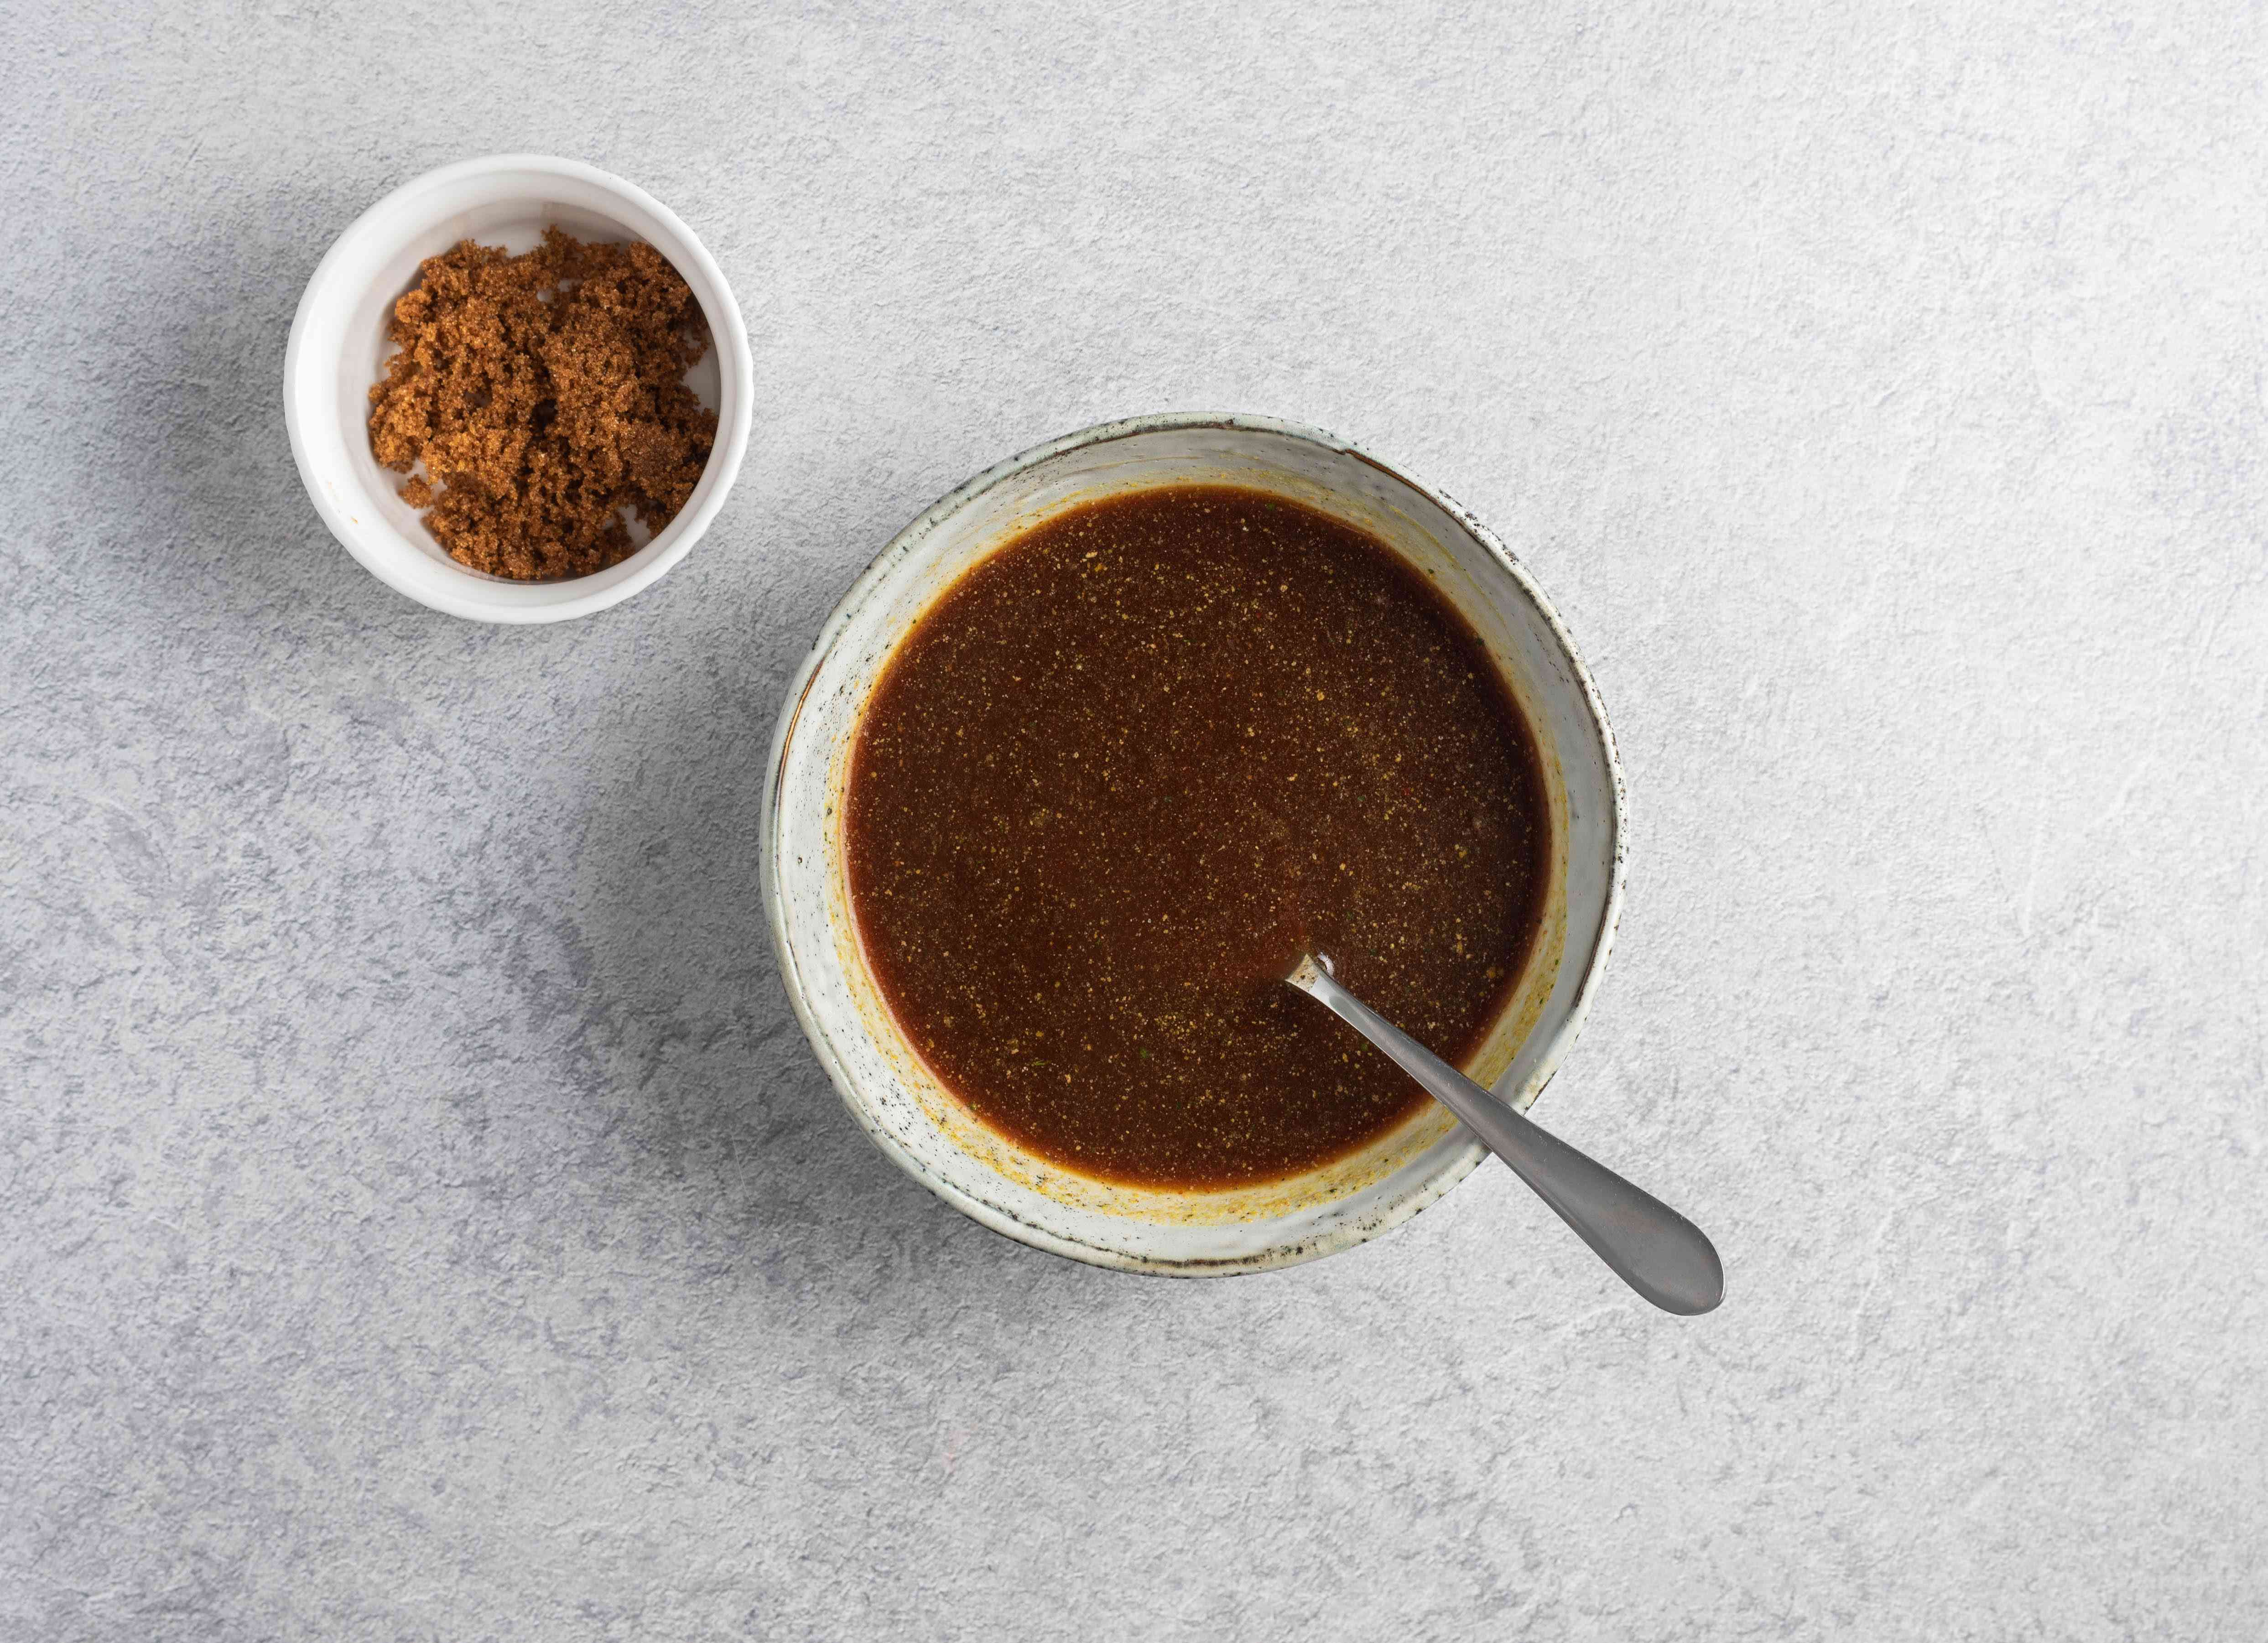 Adding more brown sugar to the sauce using a spoon